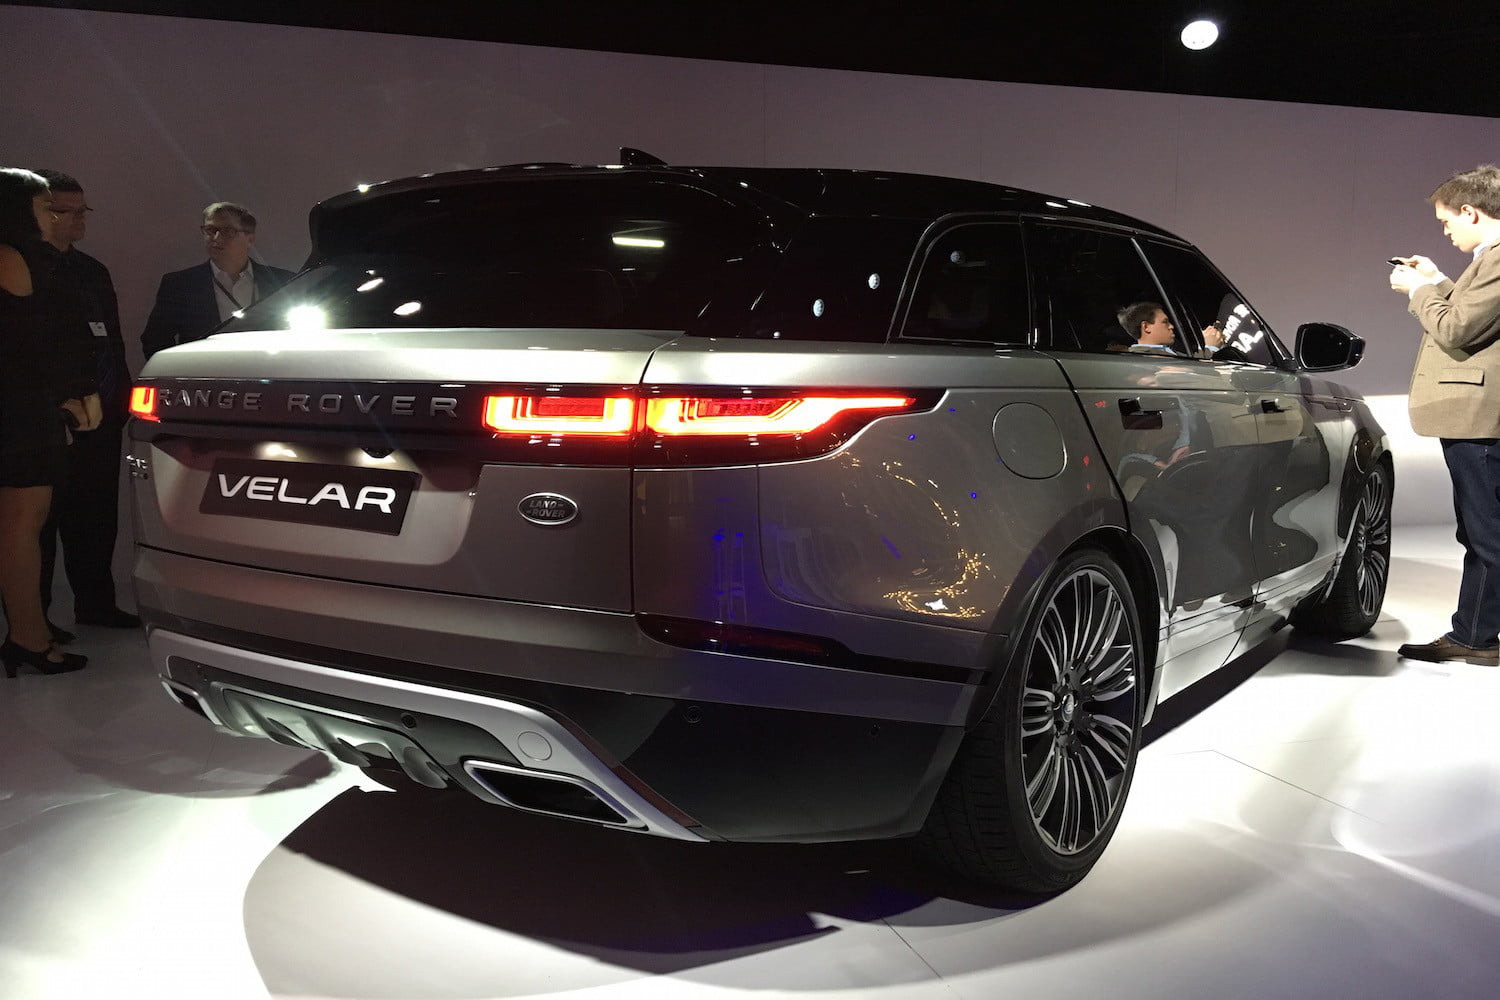 2018 Land Rover Range Rover Velar Debut | News, Pictures, Pricing ...